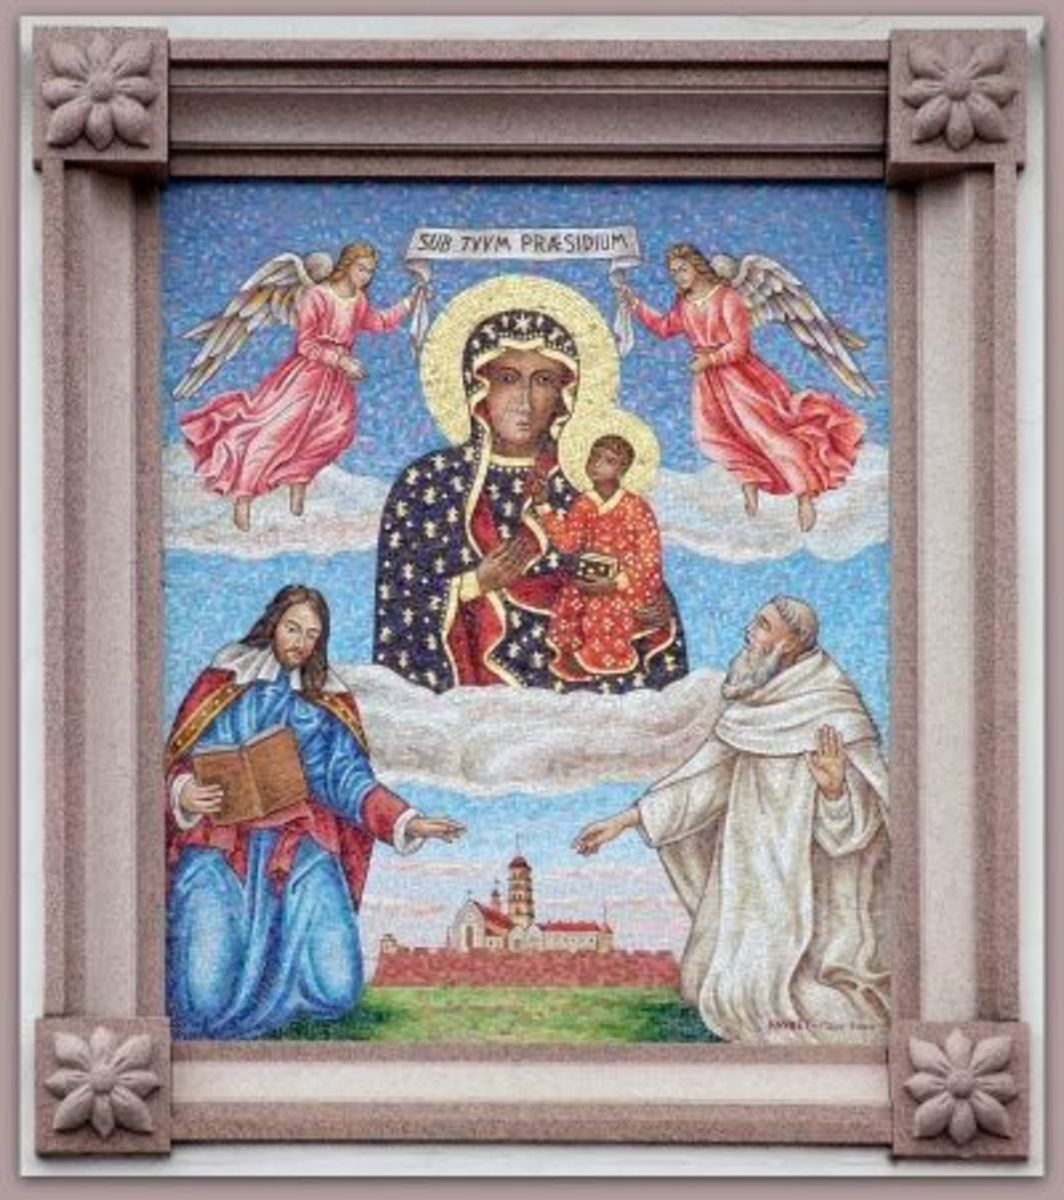 Jasna Gora Mosaic (2000) showing the Black Madonna and (possibly) King John Casimir and Father Augustyn Kordecki